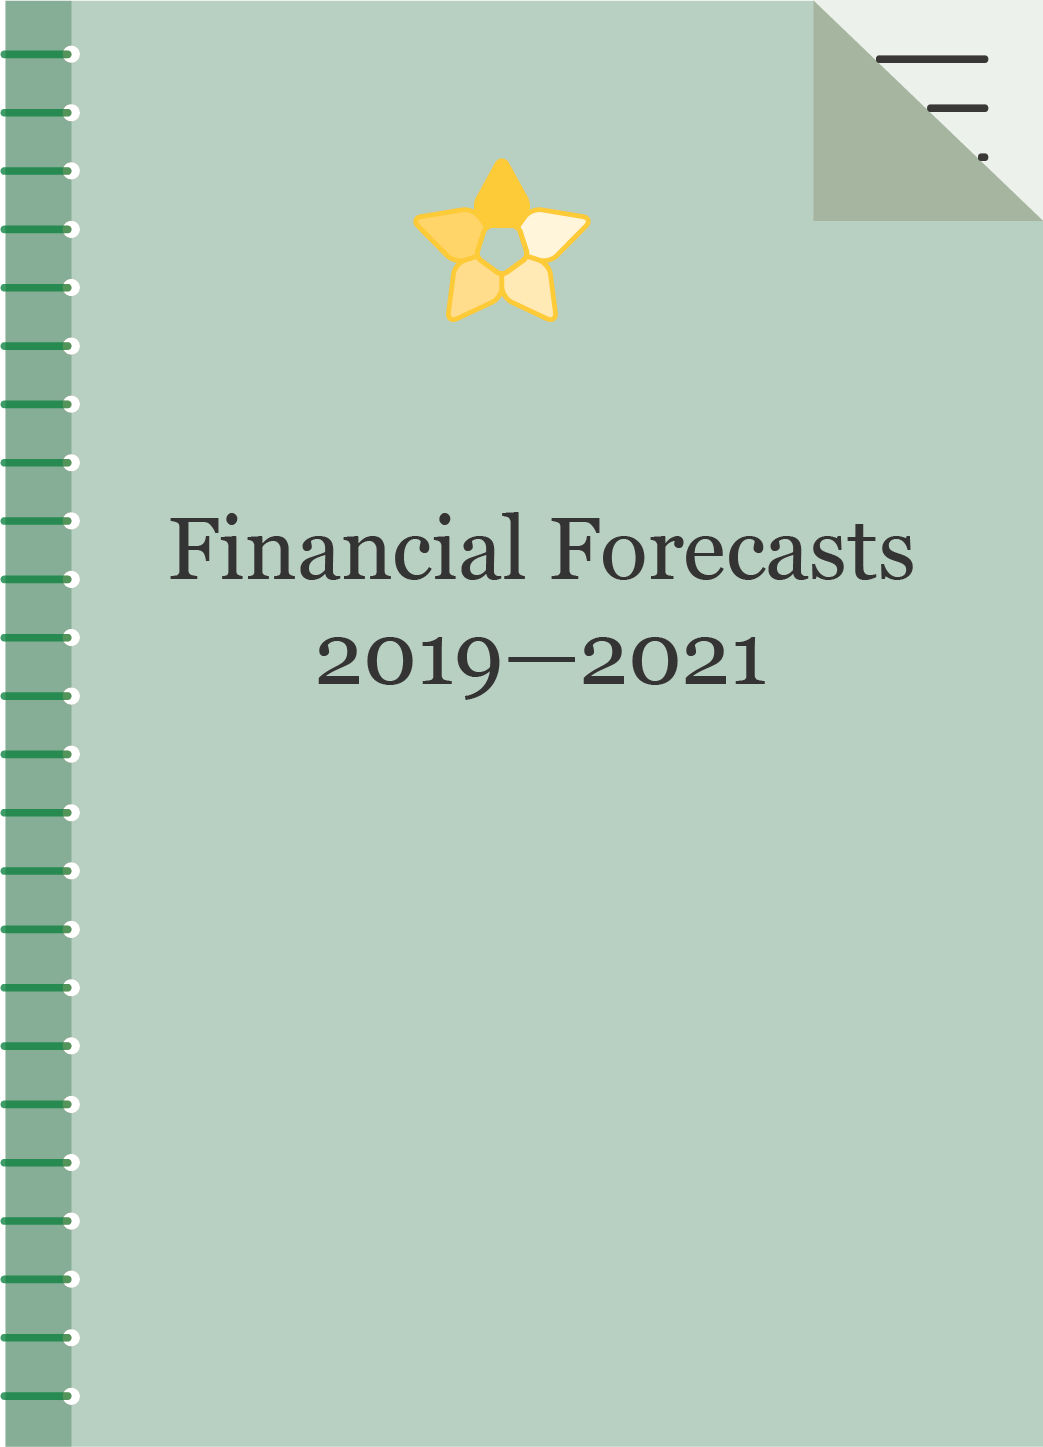 financial-forecast-a7a6b498b510db3ba8d73436ba2f6365.png